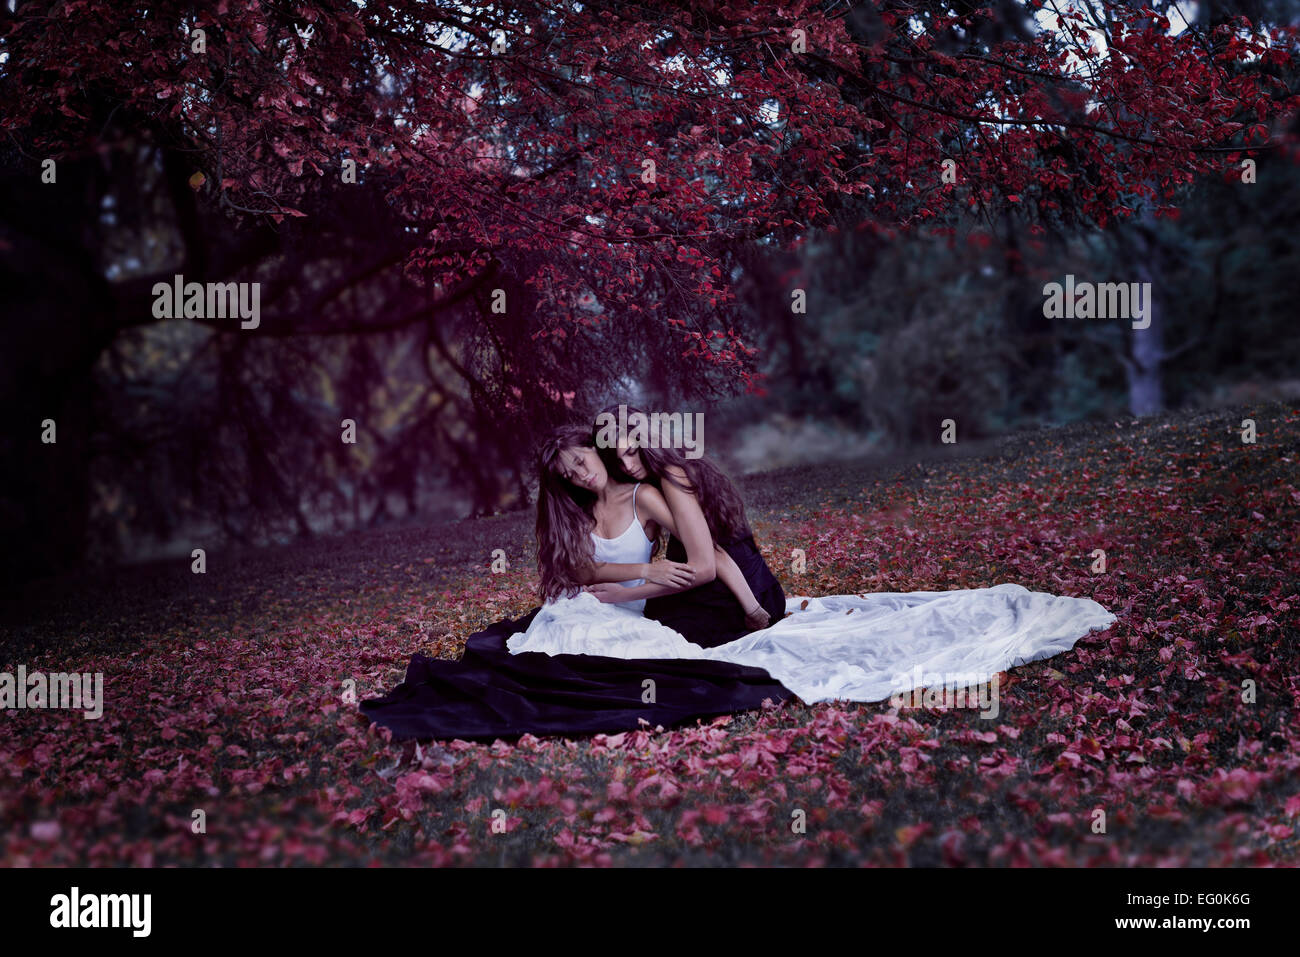 Two young women sitting on blanket - Stock Image